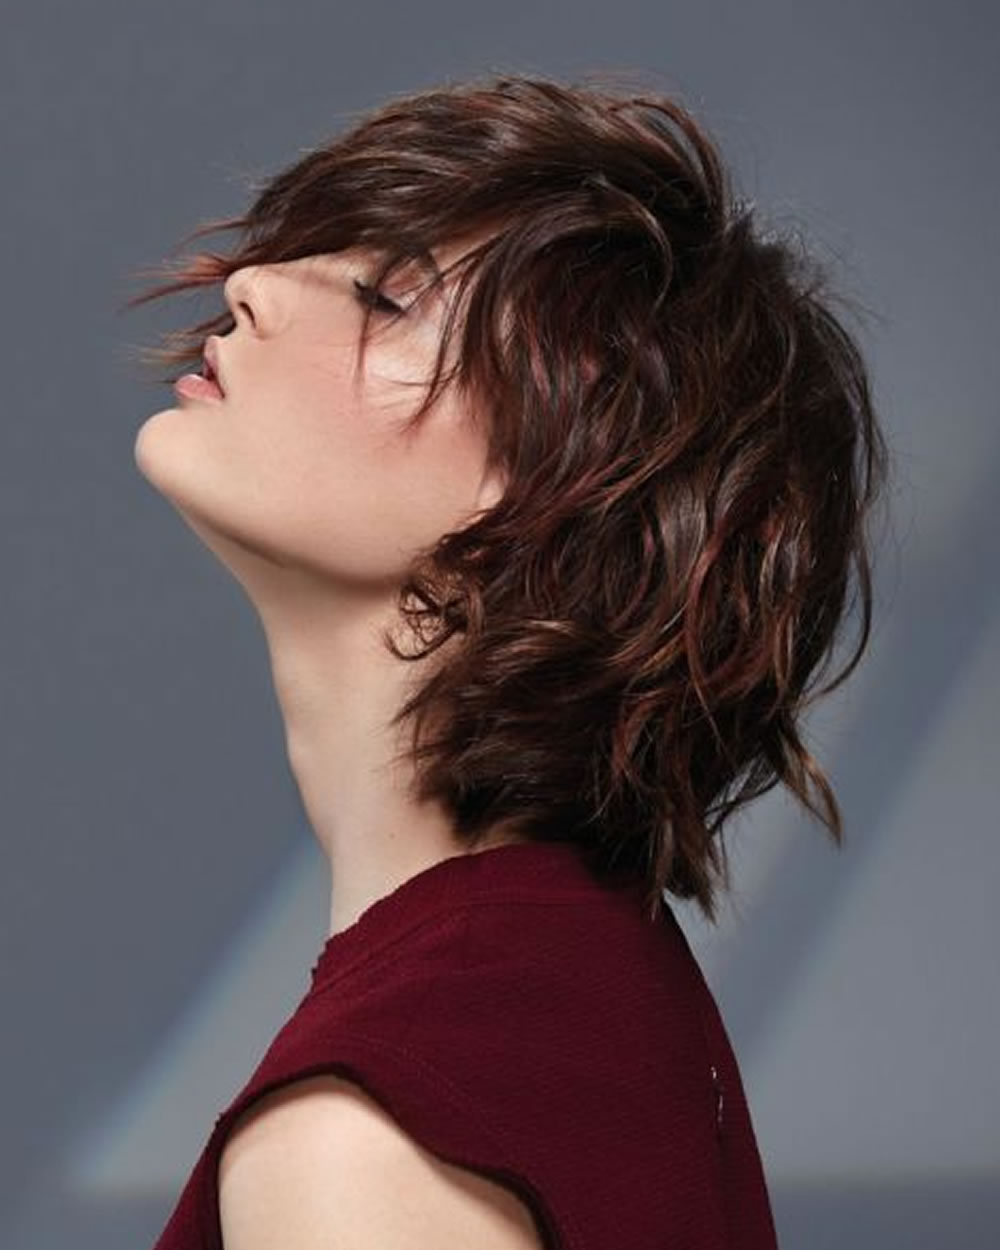 Hair Cuts : Bob Haircuts For Round Faces And Fine Hair Thick Female Regarding Short Haircuts For Fat Faces (View 18 of 25)